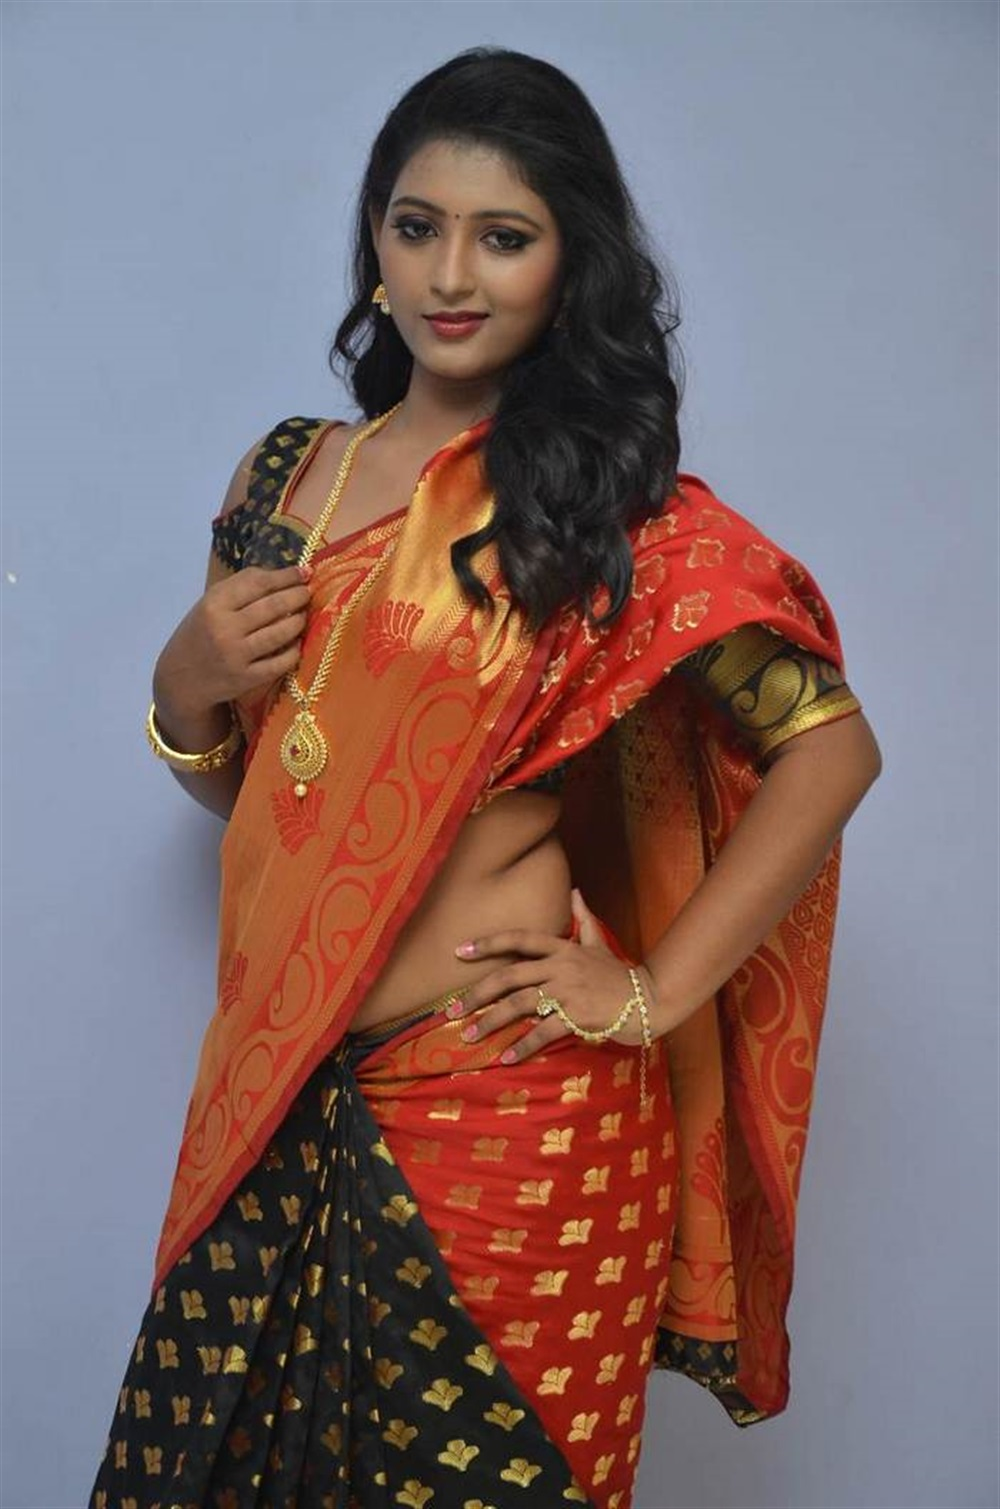 Actress Tanushka Hot Red Saree Photos